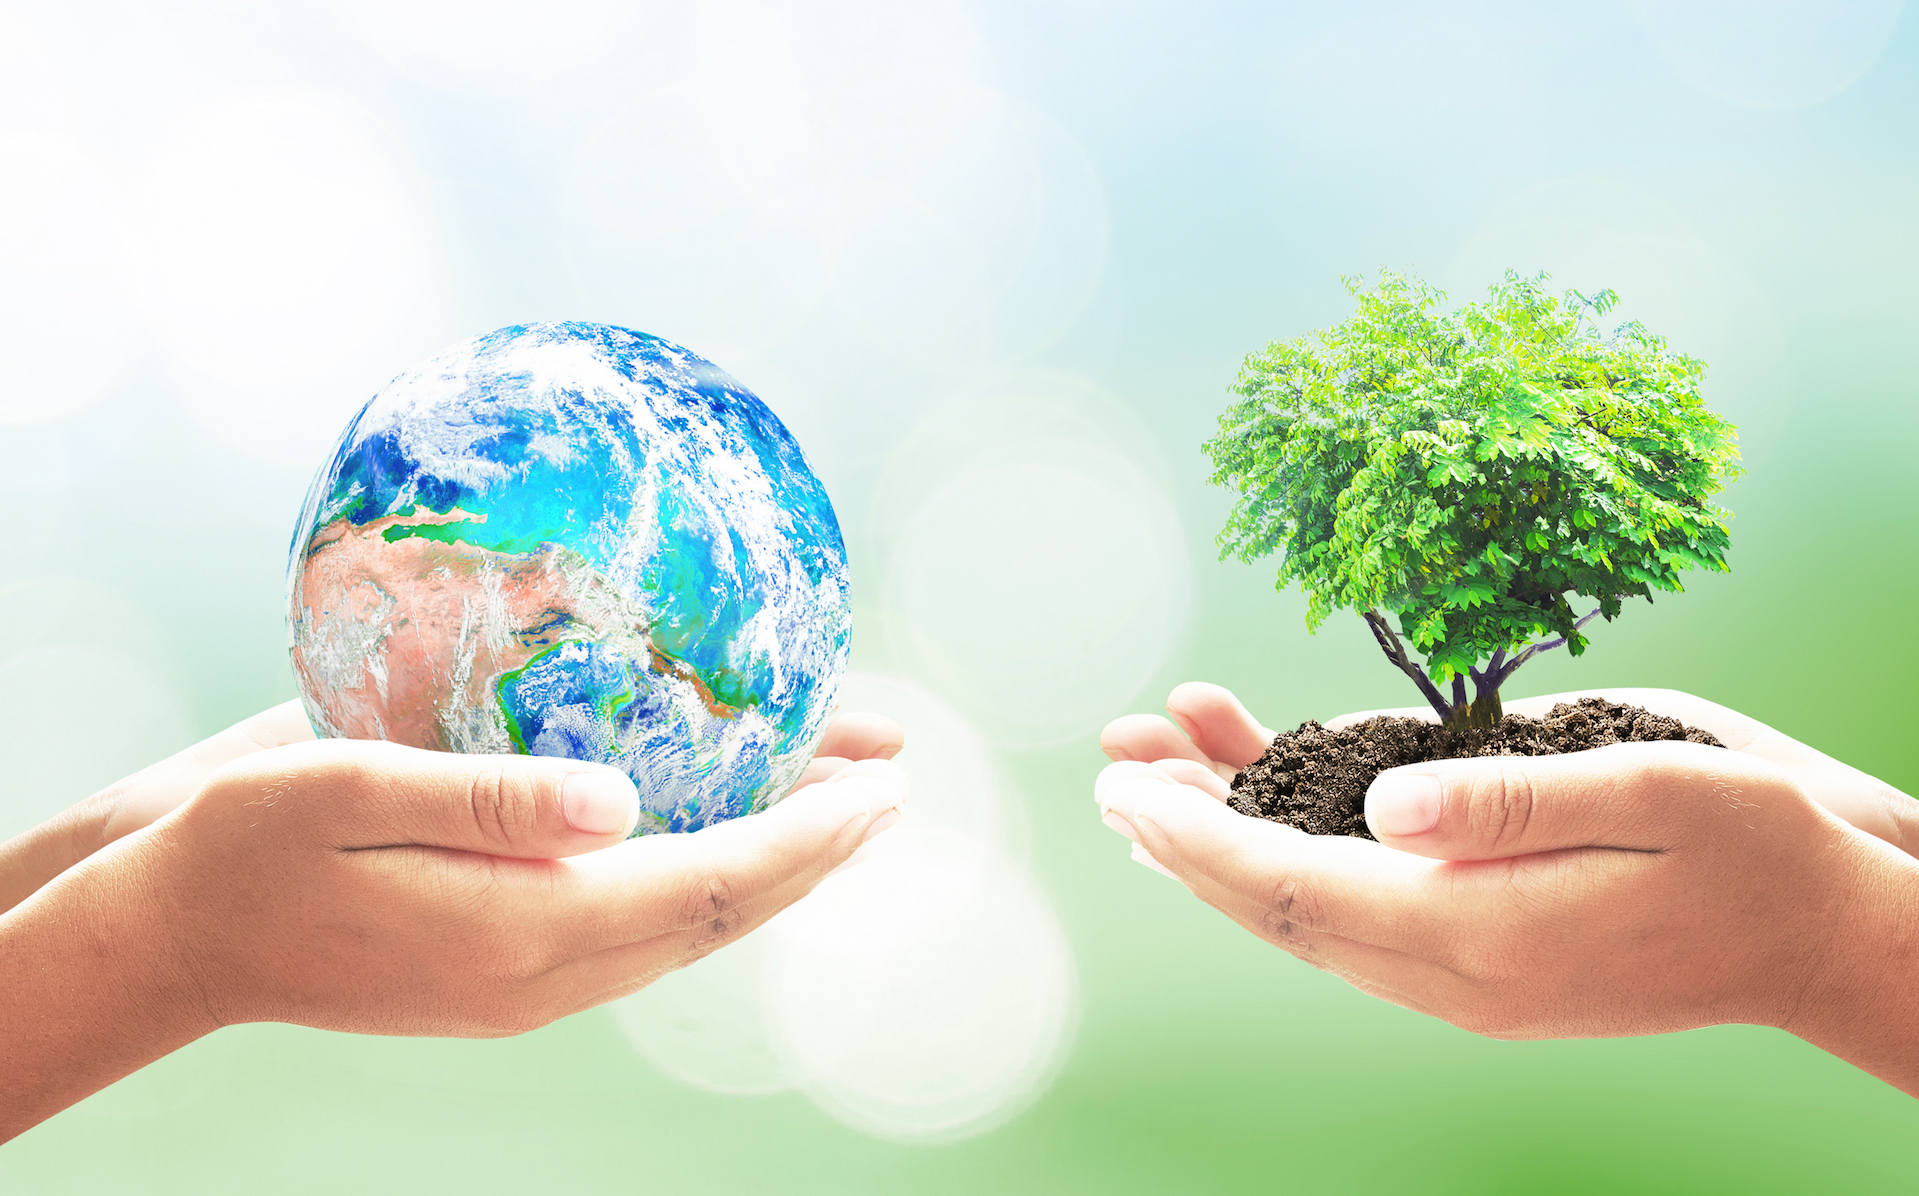 Earth Day was first envisioned in its current form during the social struggles of America in 1970, and has since become an important annual tradition of environmentalism.